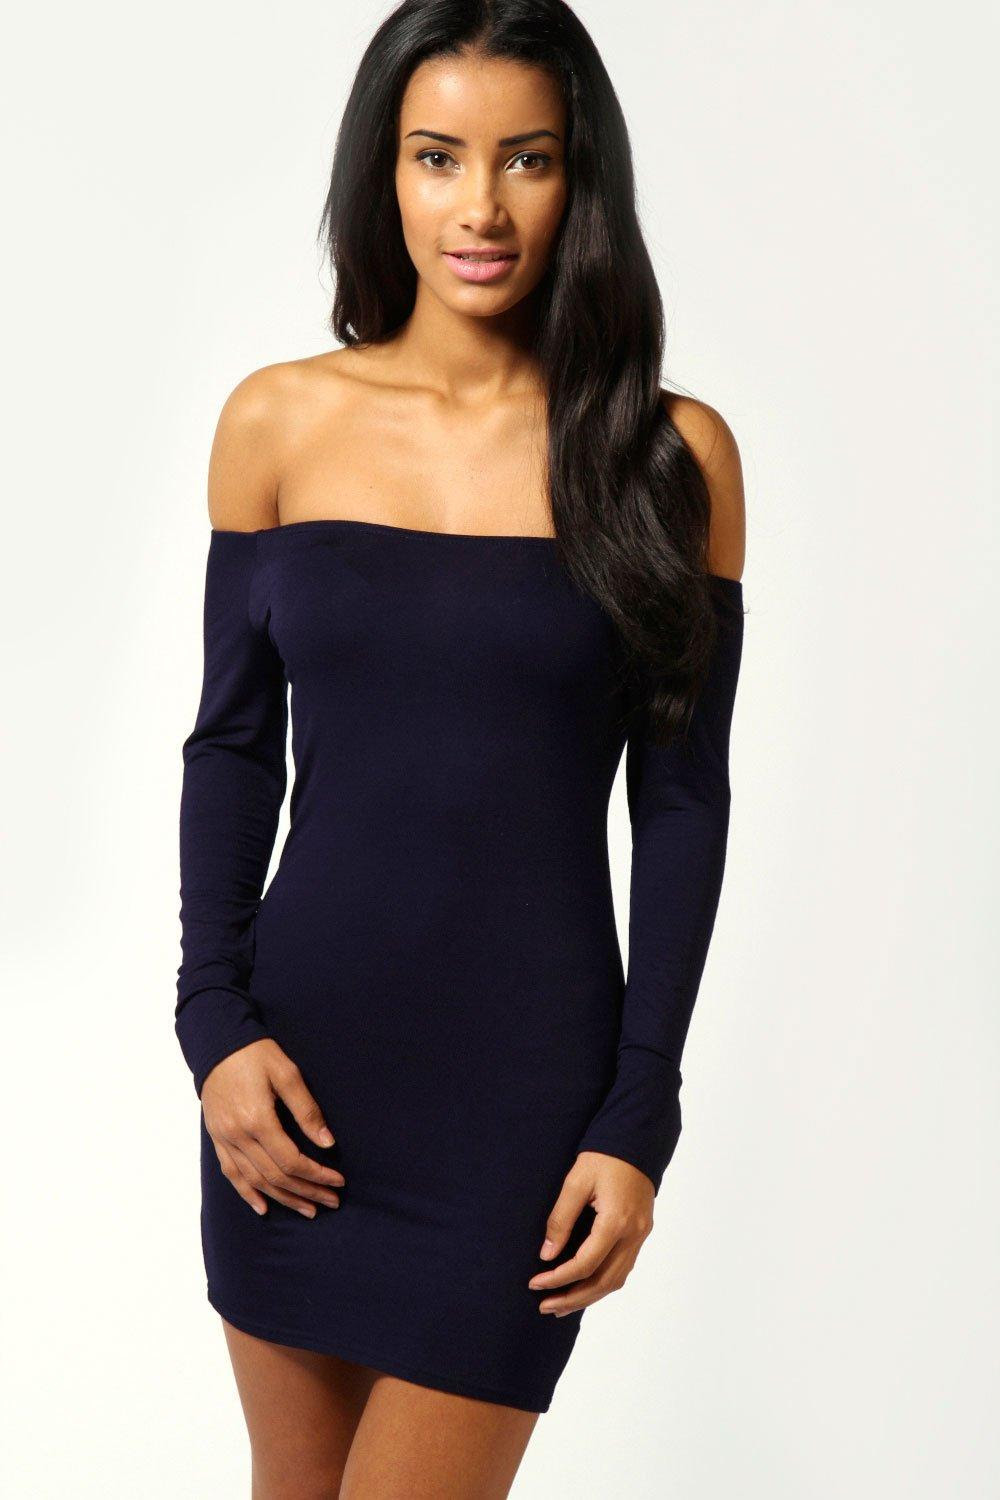 Dresses sleeve the shoulder long bodycon off plus size